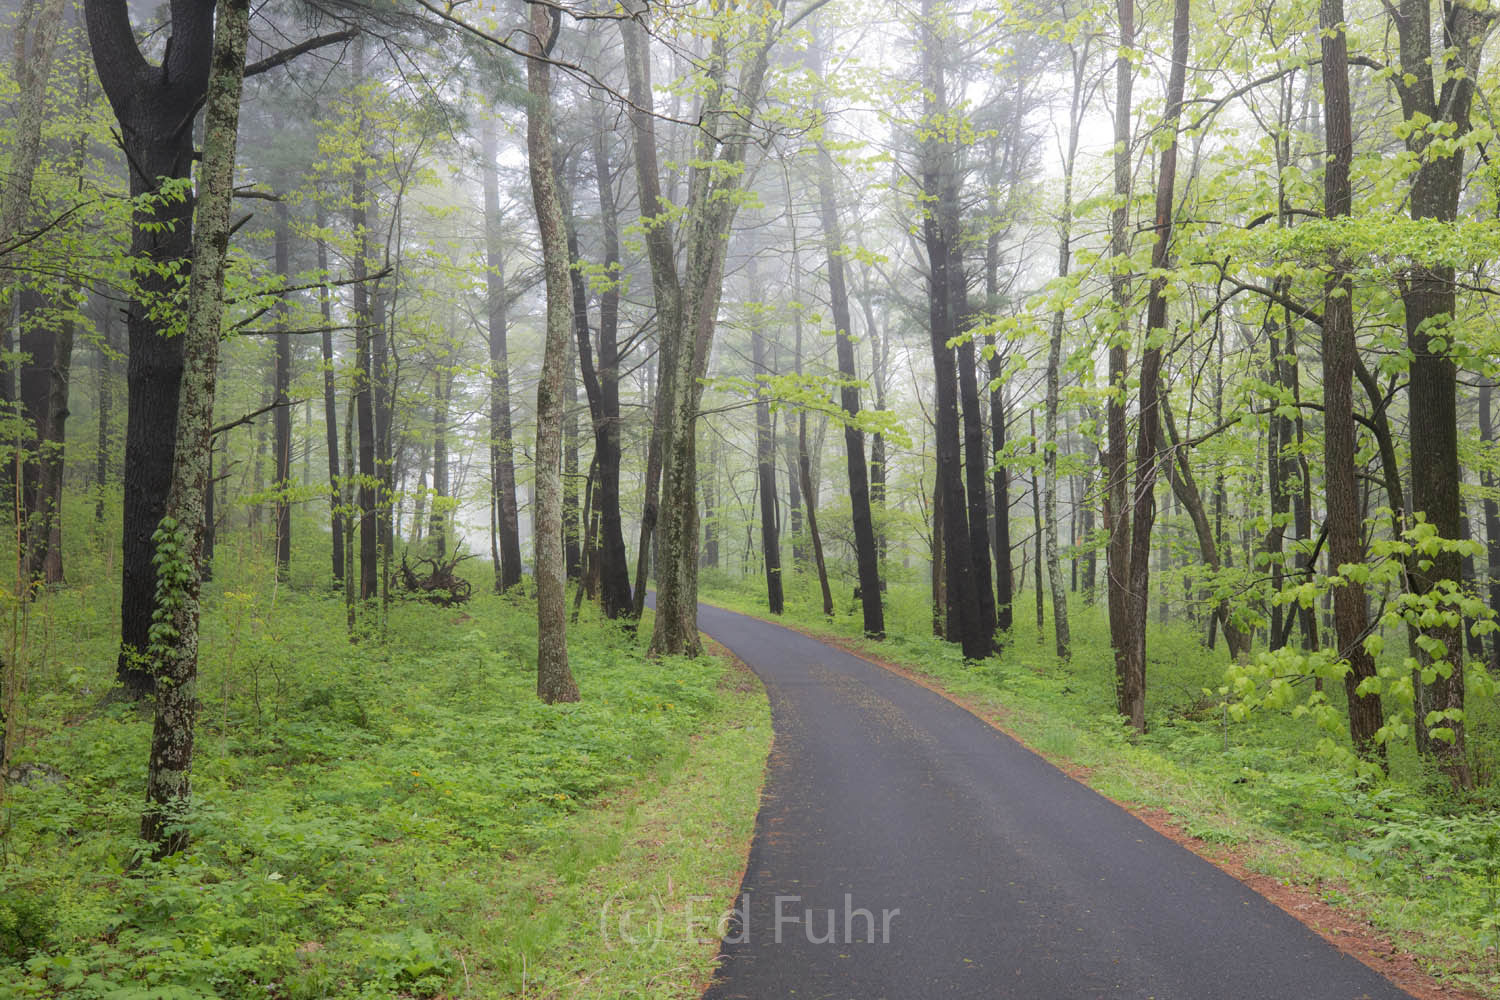 Shenandoah national park, spring, photograph, image, photo